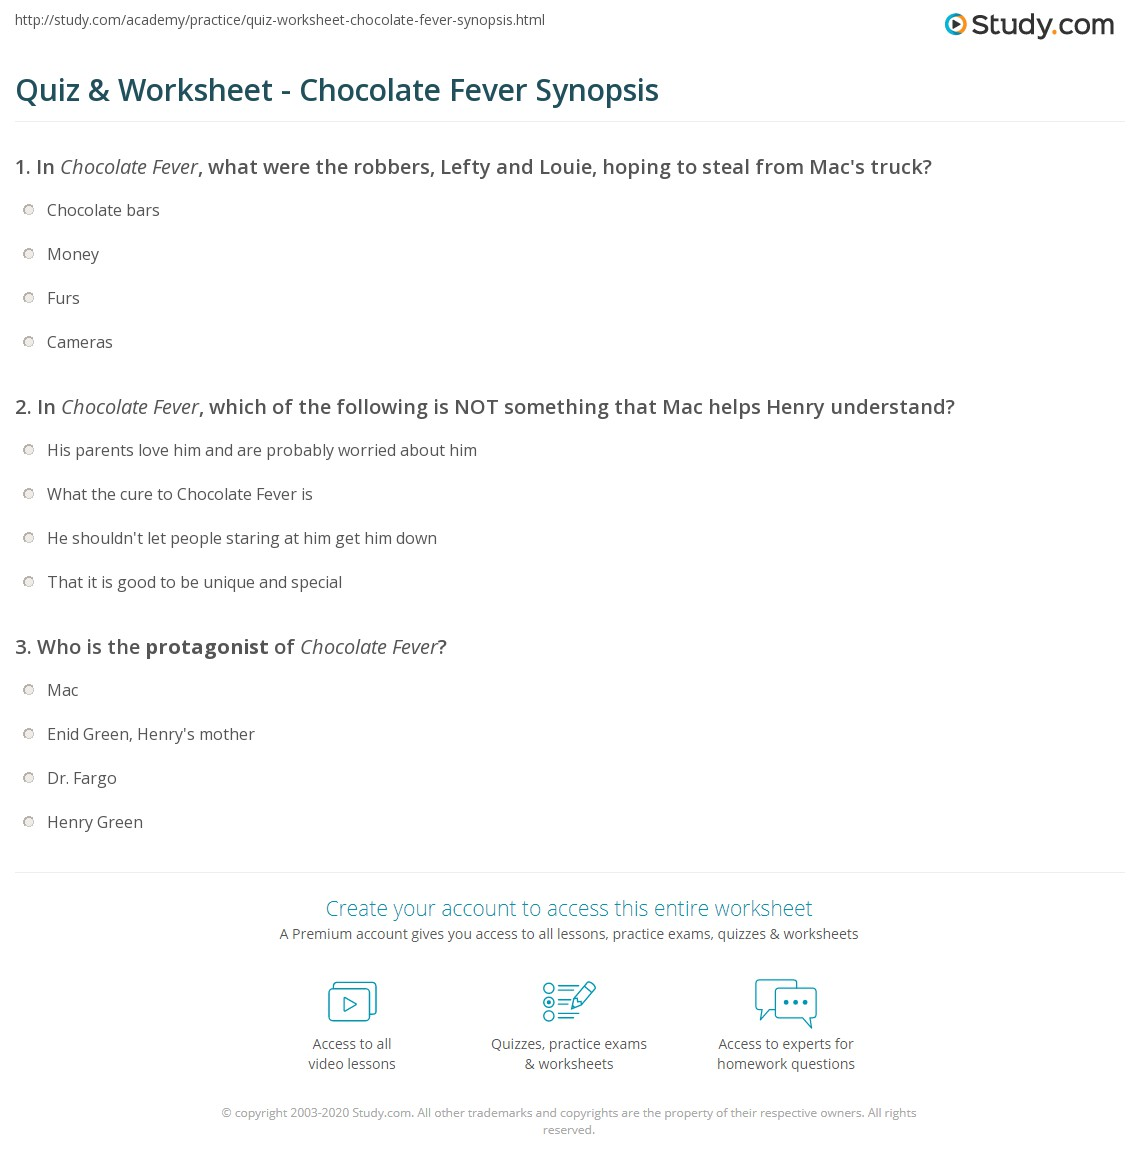 Chocolate Fever Worksheets Worksheets For School - Signaturebymm